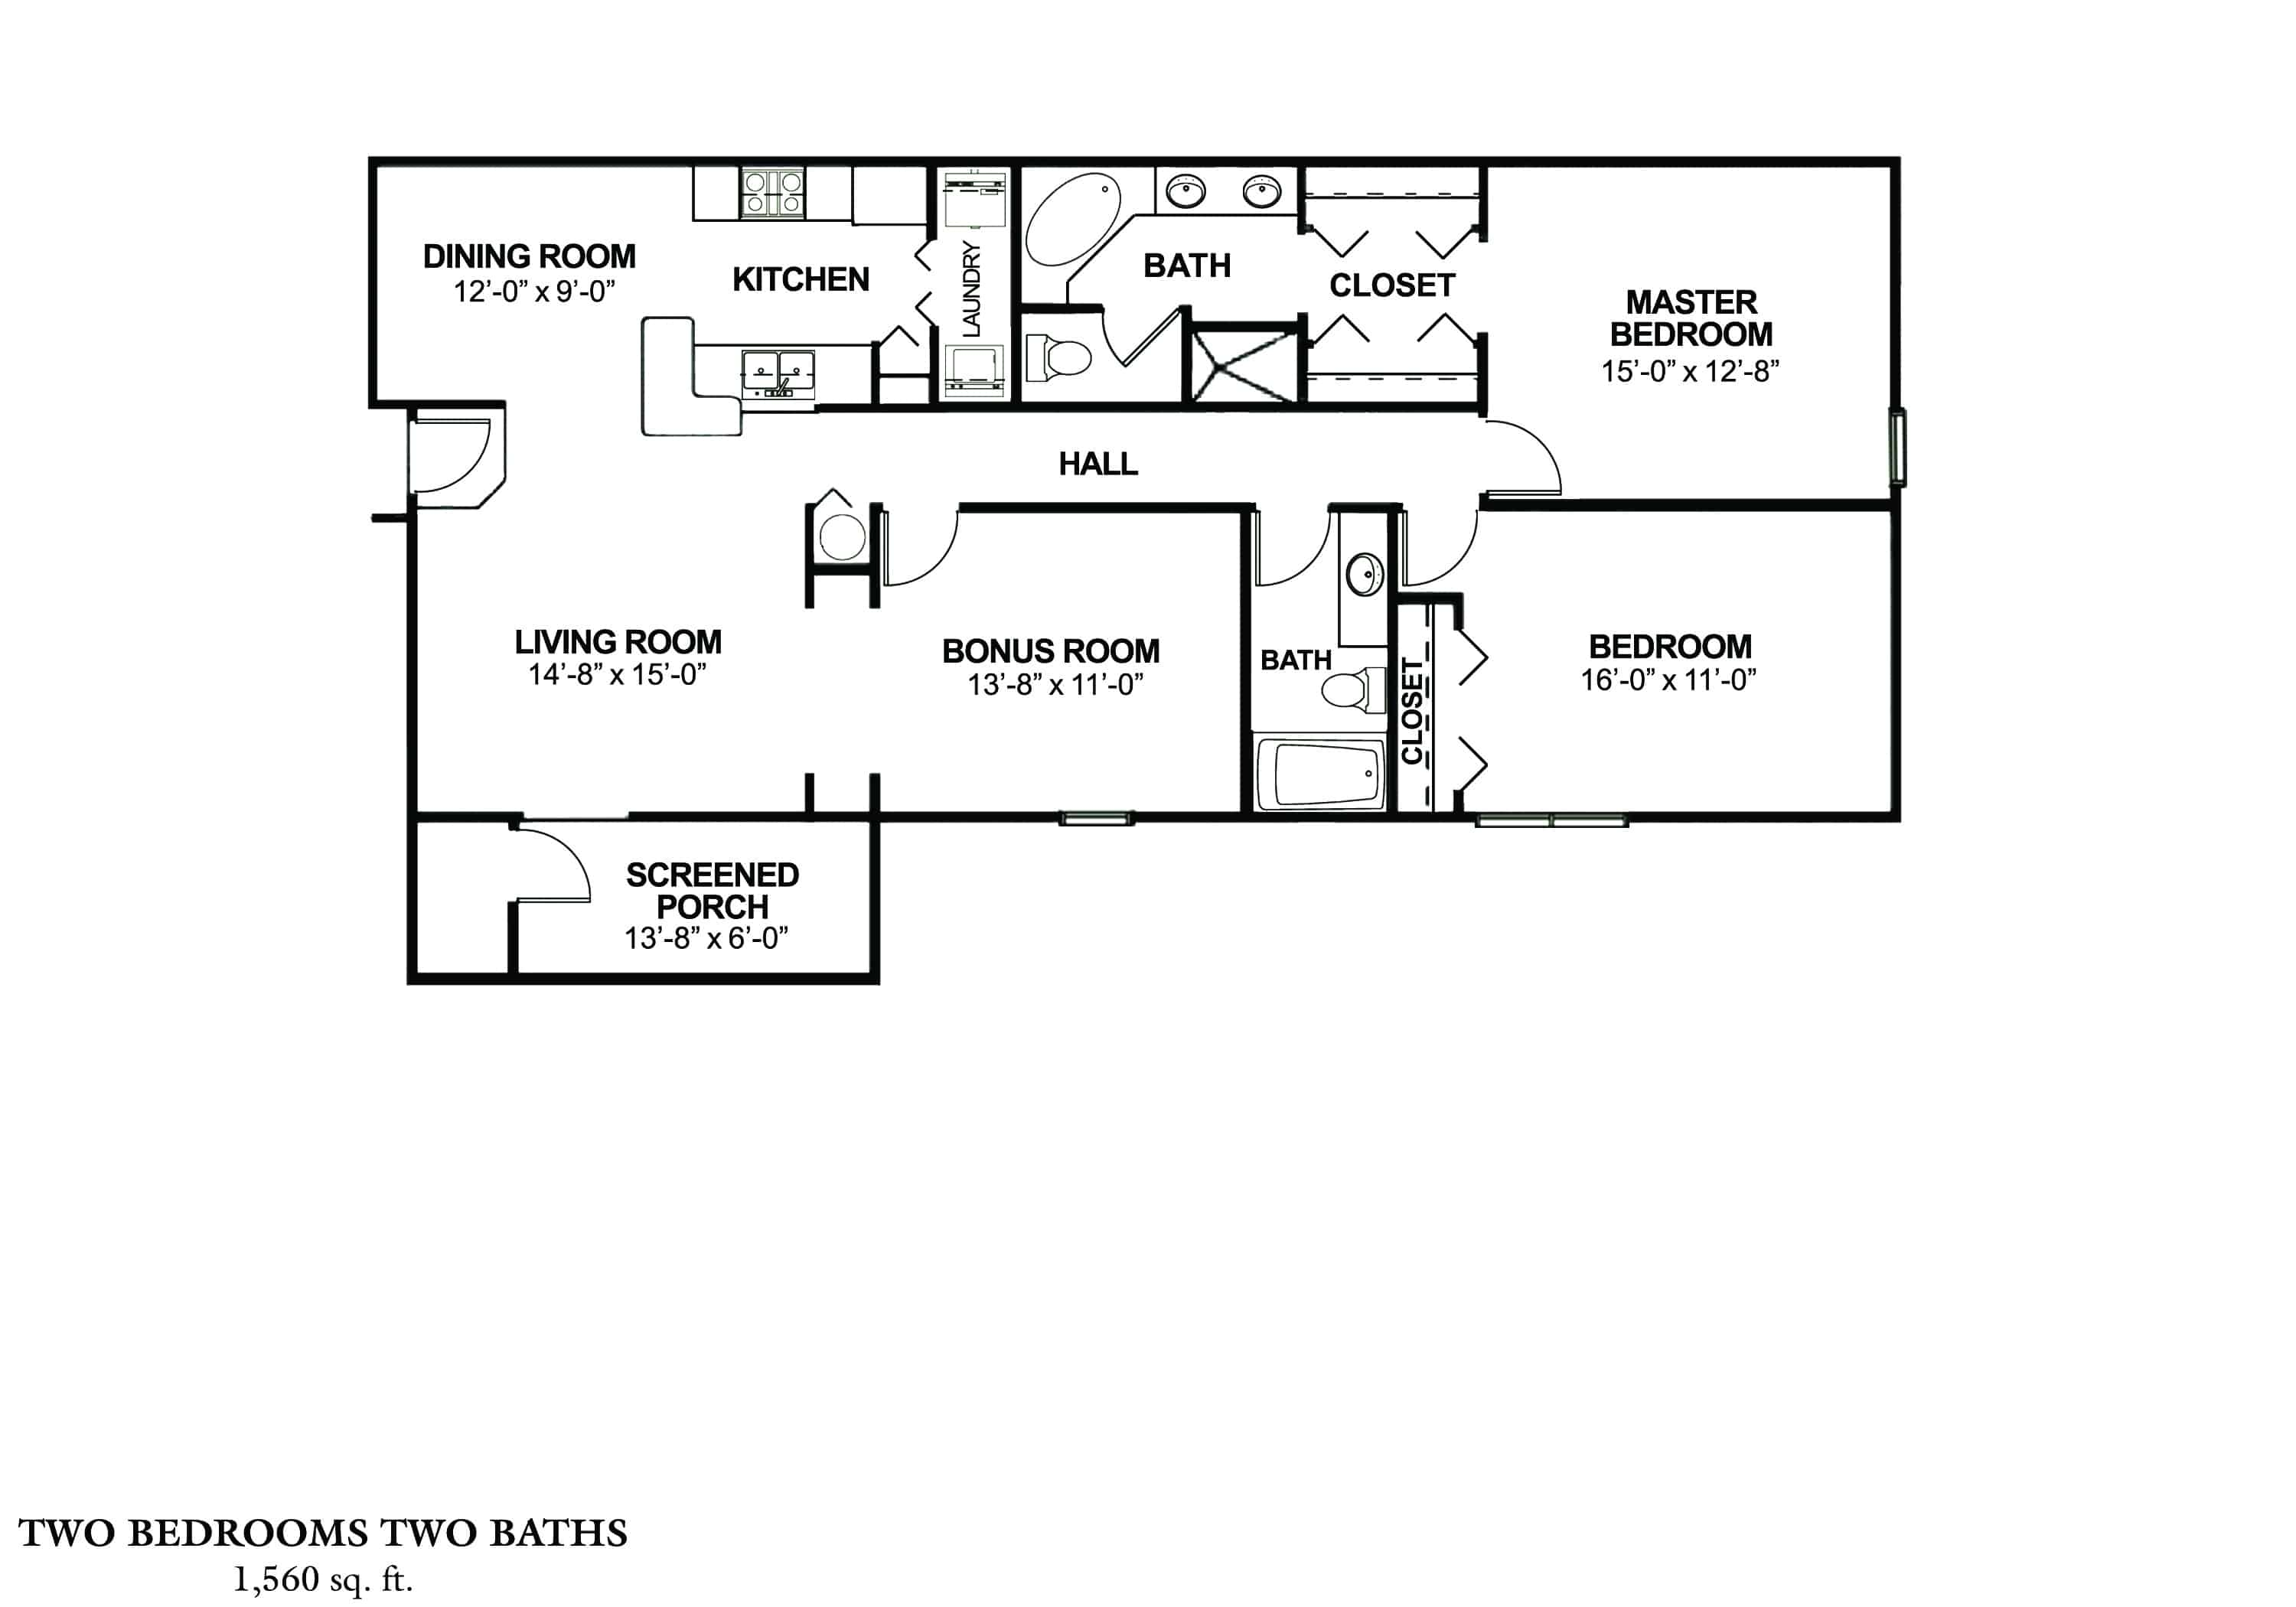 Two Bedroom, Two Bath with Bonus Room - Phase I Approx. 1,560 sq. ft. with 152 sq. ft. Rent From $975 - $1,010 Beds 2 Baths 2